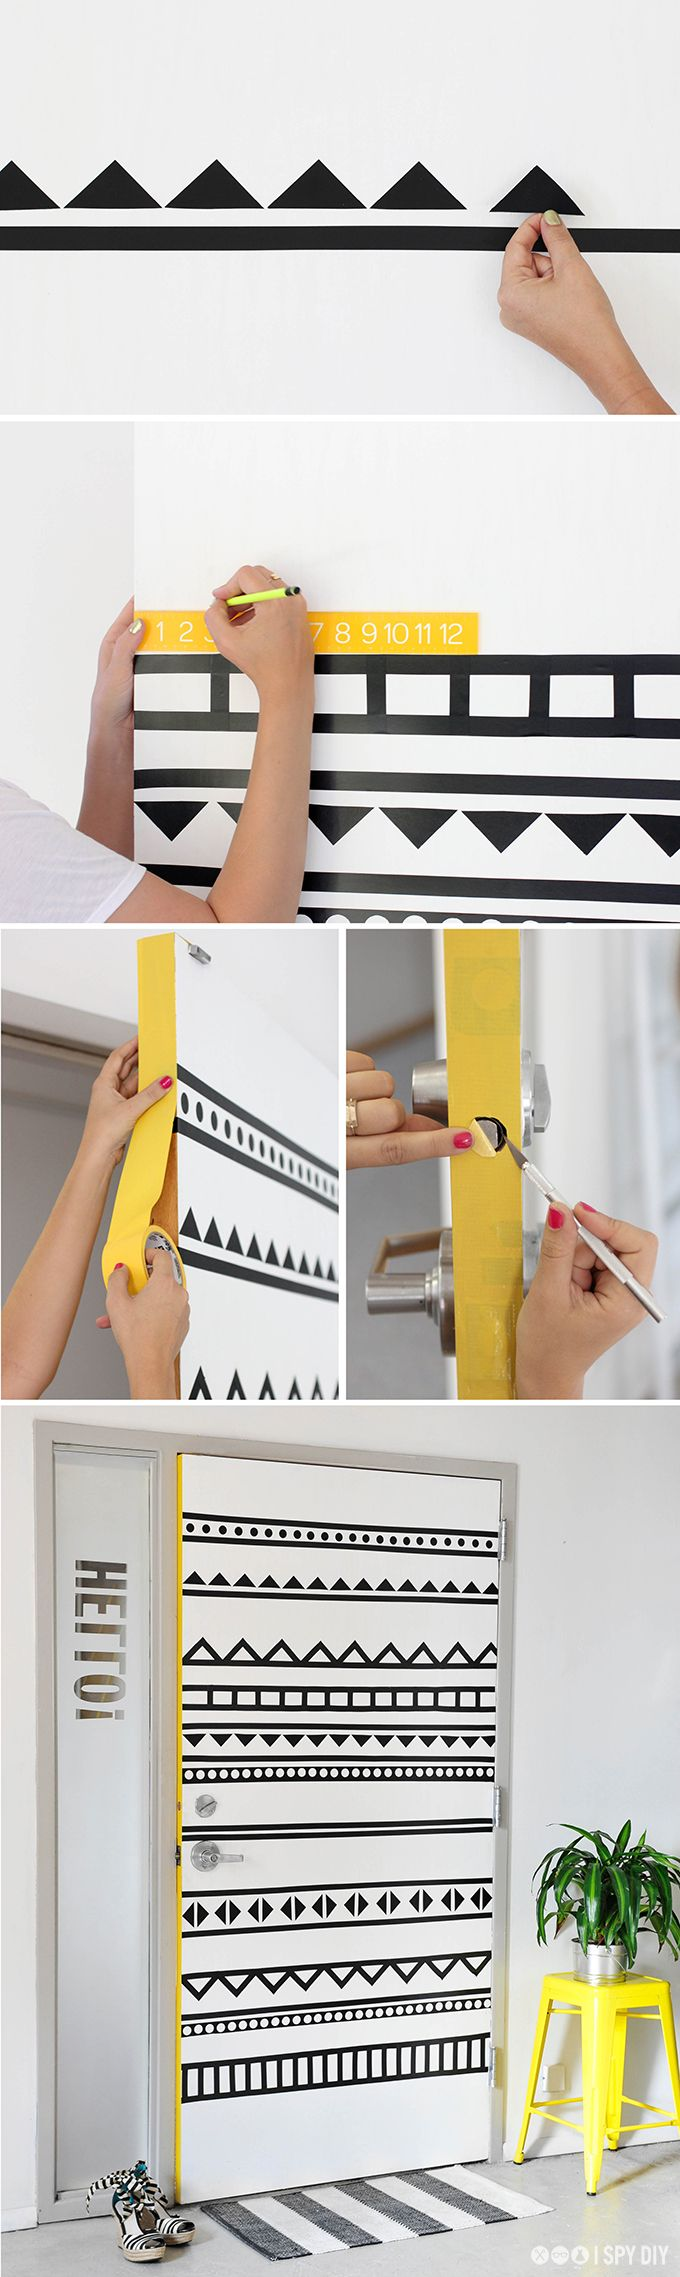 Diy crafty door